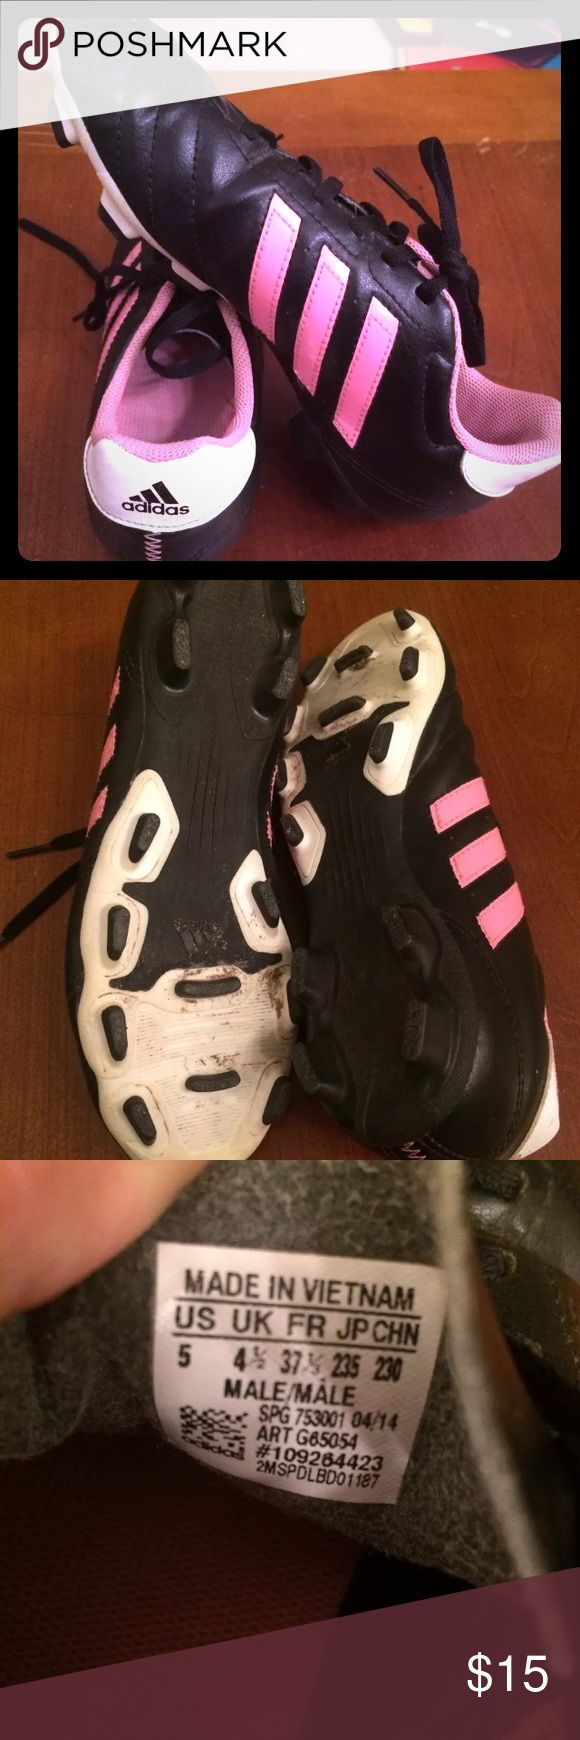 Adidas Soccer Cleats - Black w/ pink stripes Adidas girls soccer cleats Black with pink stripes and pink interiors. The cleat parts are in very good condition. Gently used In great used condition, very little wear.  Size 5 in men's  Perfect for a little one learning to play soccer adidas Shoes